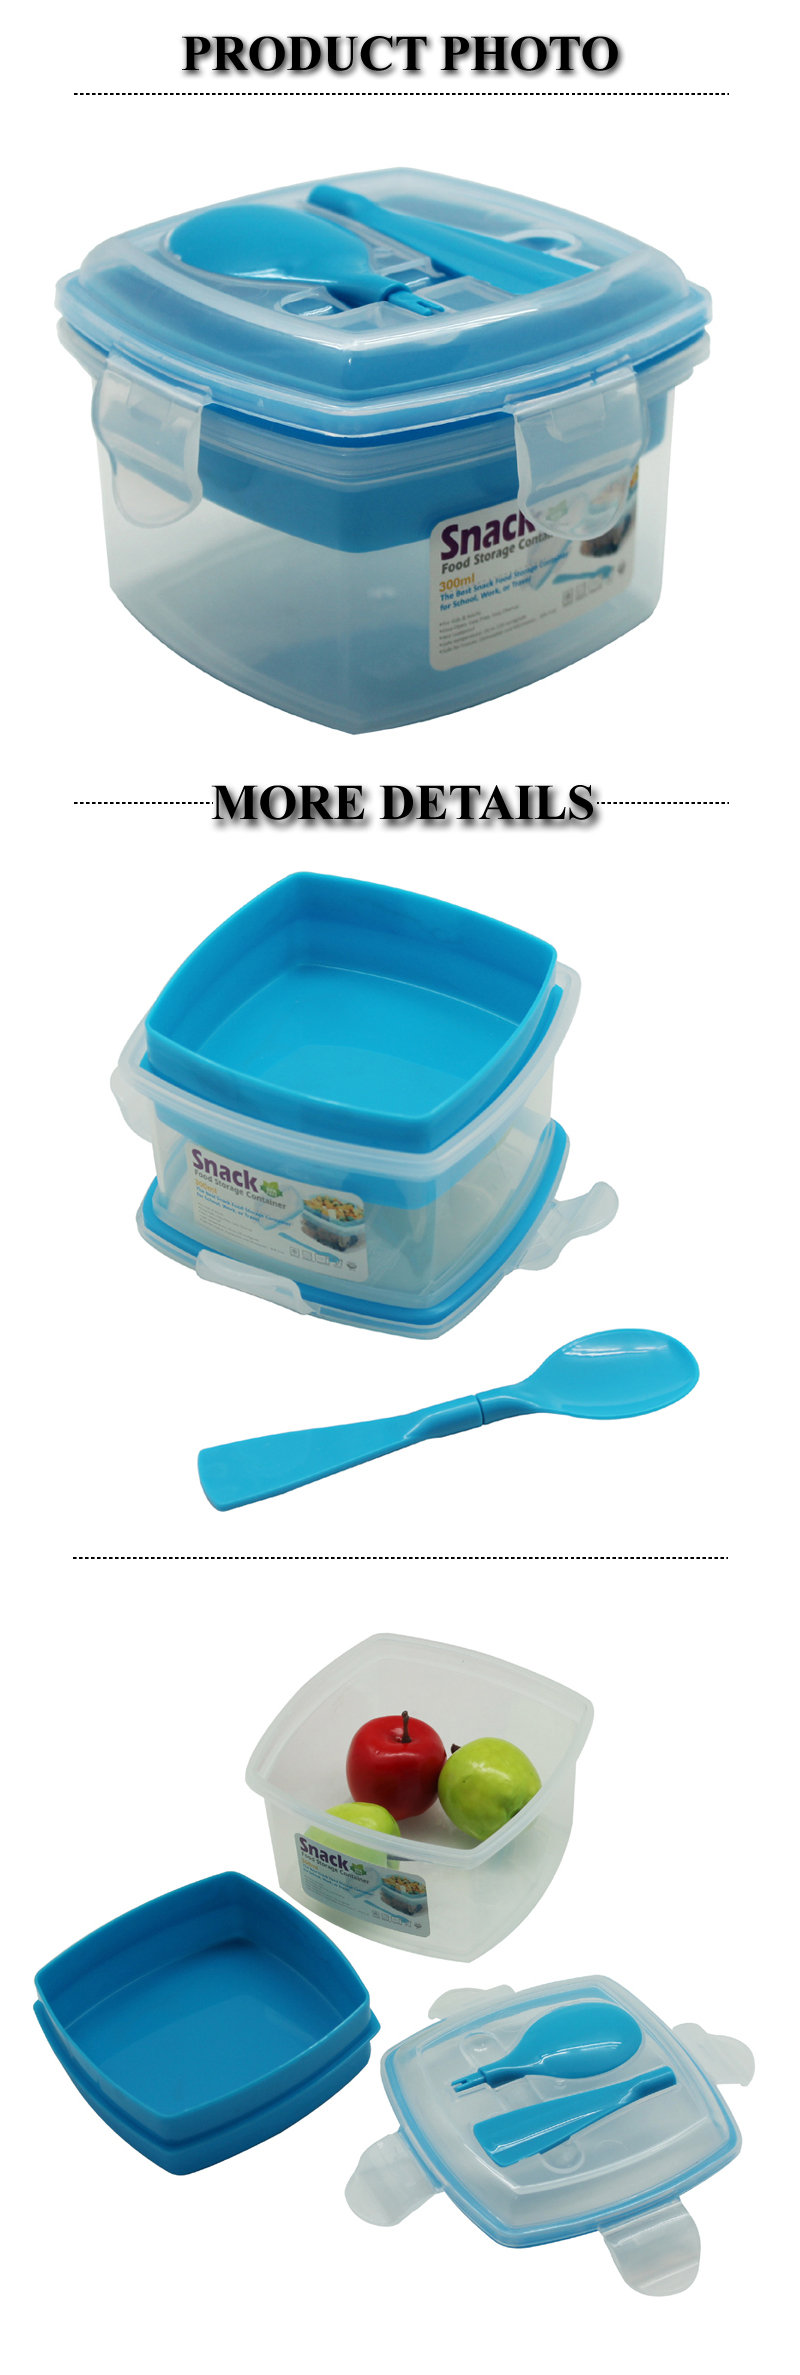 PP Square shape Kids' Yogurt and Snack Box for Back-to-School